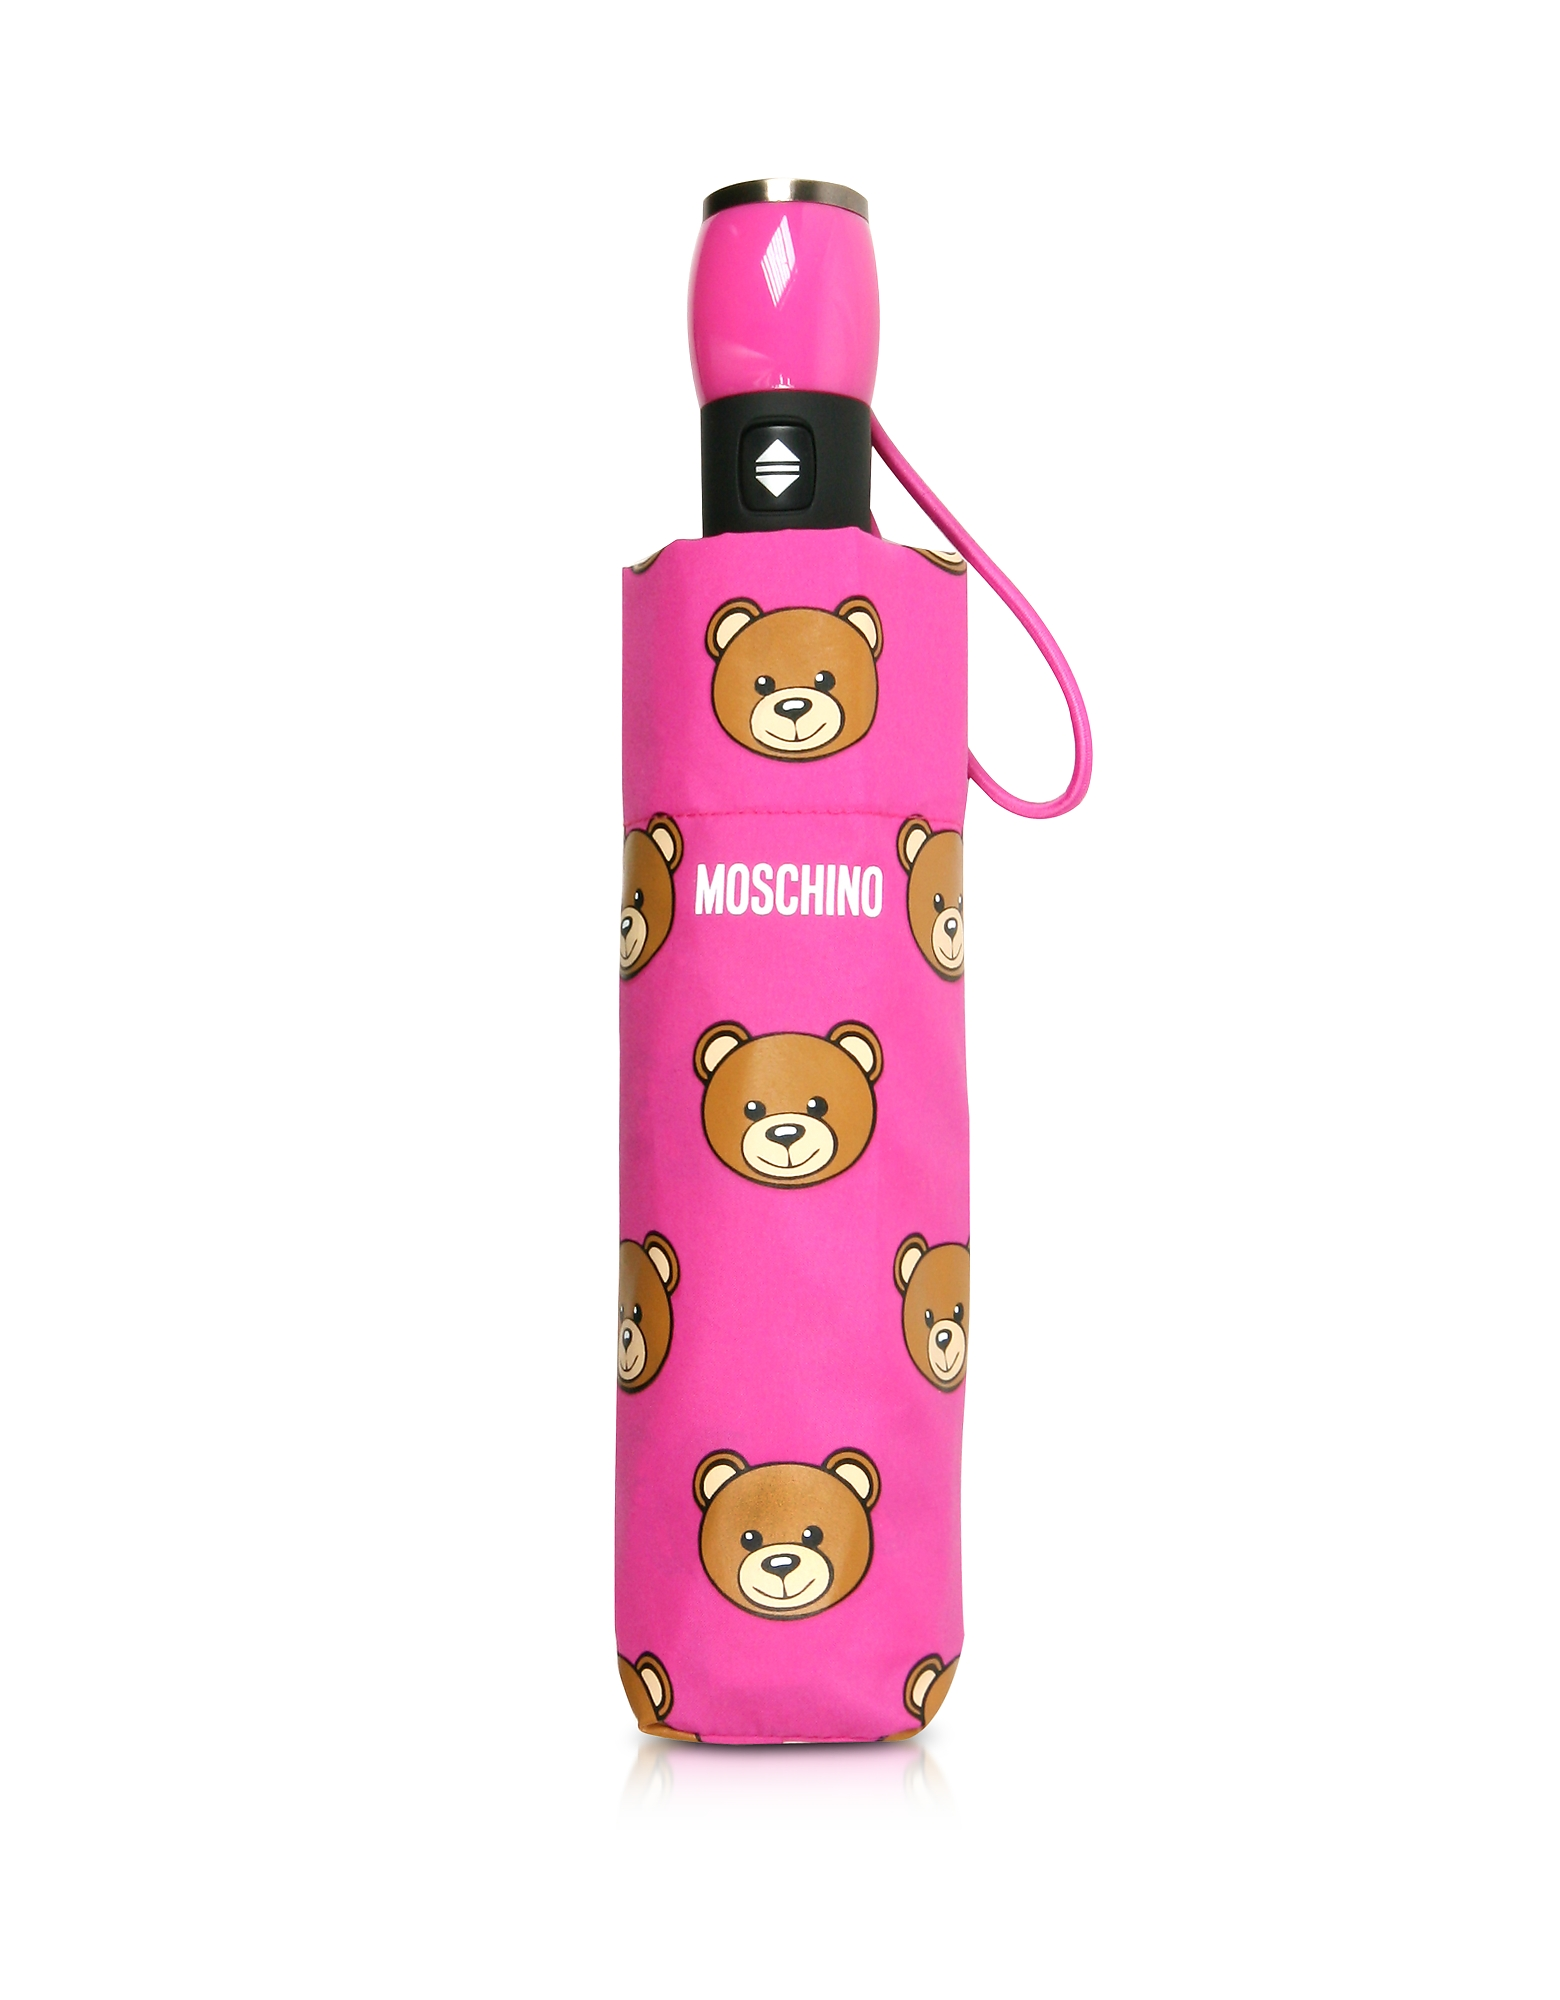 Moschino Umbrellas, Teddy Heads Fuchsia Mini Umbrella